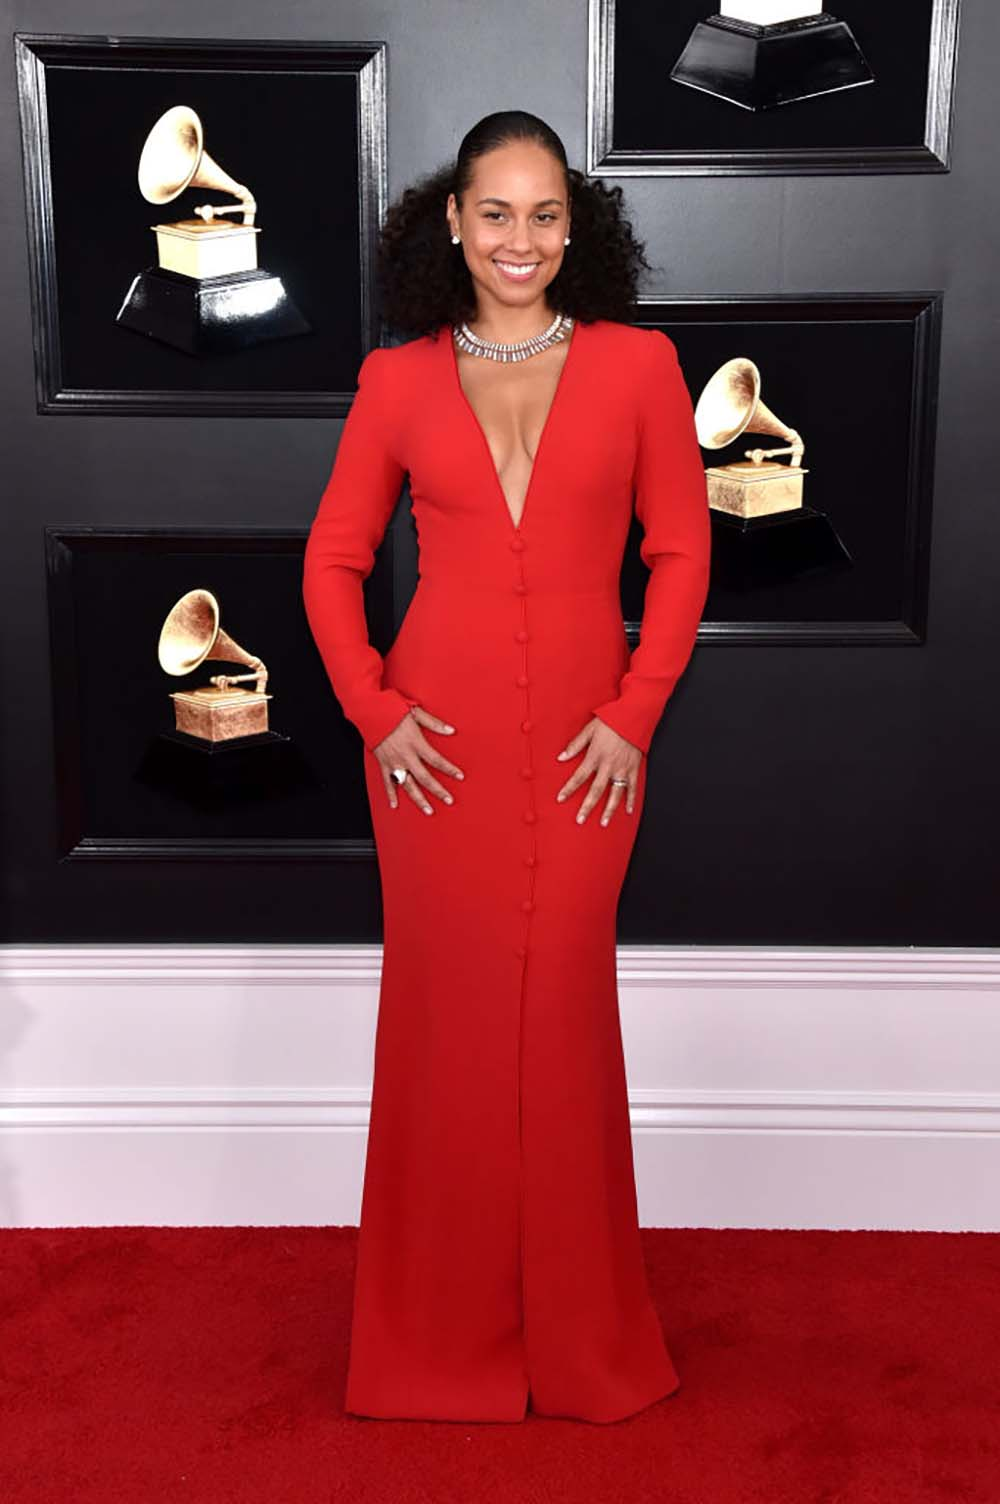 Alicia-Keys-Grammy-Awards.jpg